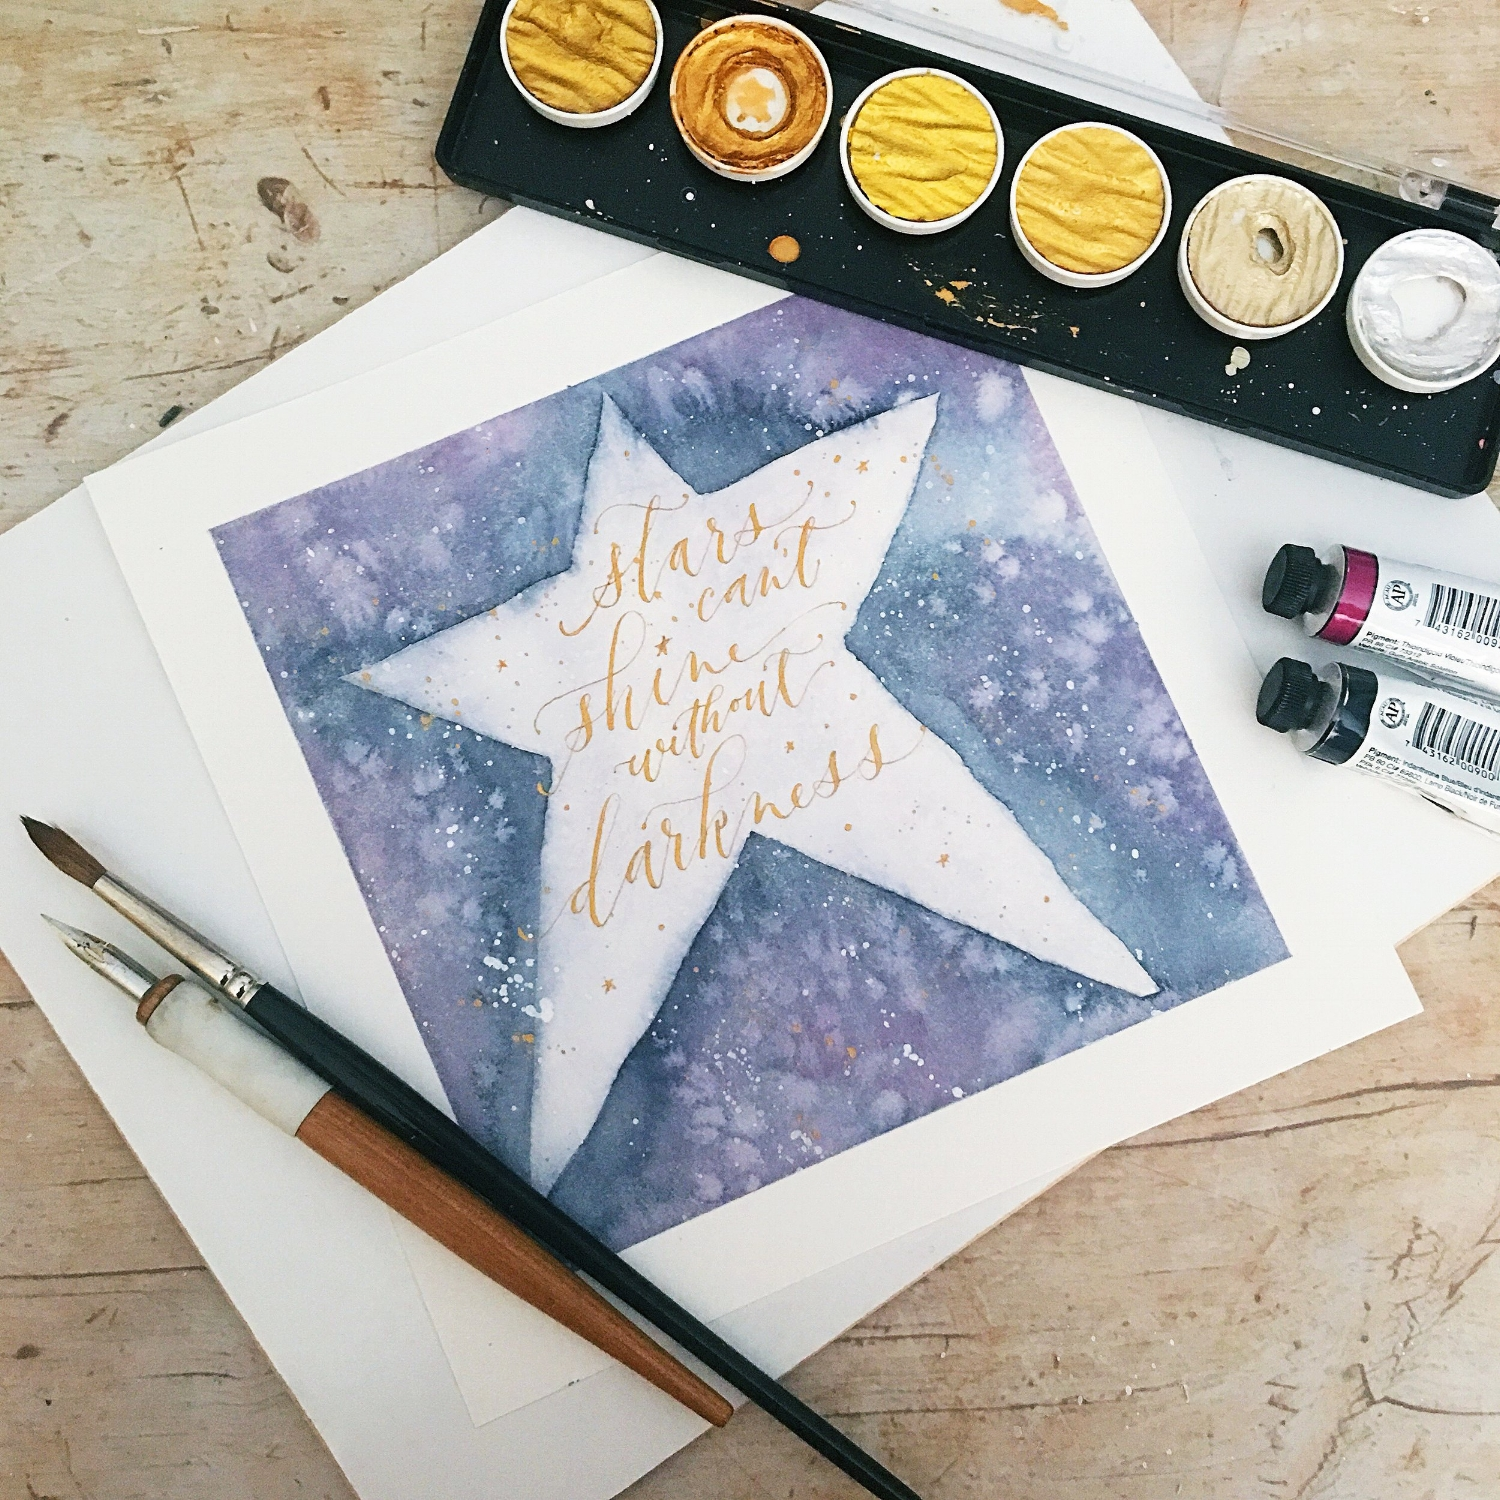 My lesson for  Just Add Water goes live tomorrow!I will lead you through my process in creating a sparkly galaxy effect using traditional watercolors along with the Finetec gold watercolor palette. Then we will pair this effect with the pointed pen to design a favorite quote. It could be a quote about stars, magic, the galaxy, unicorns --- or whatever magical, special quote you want to use!